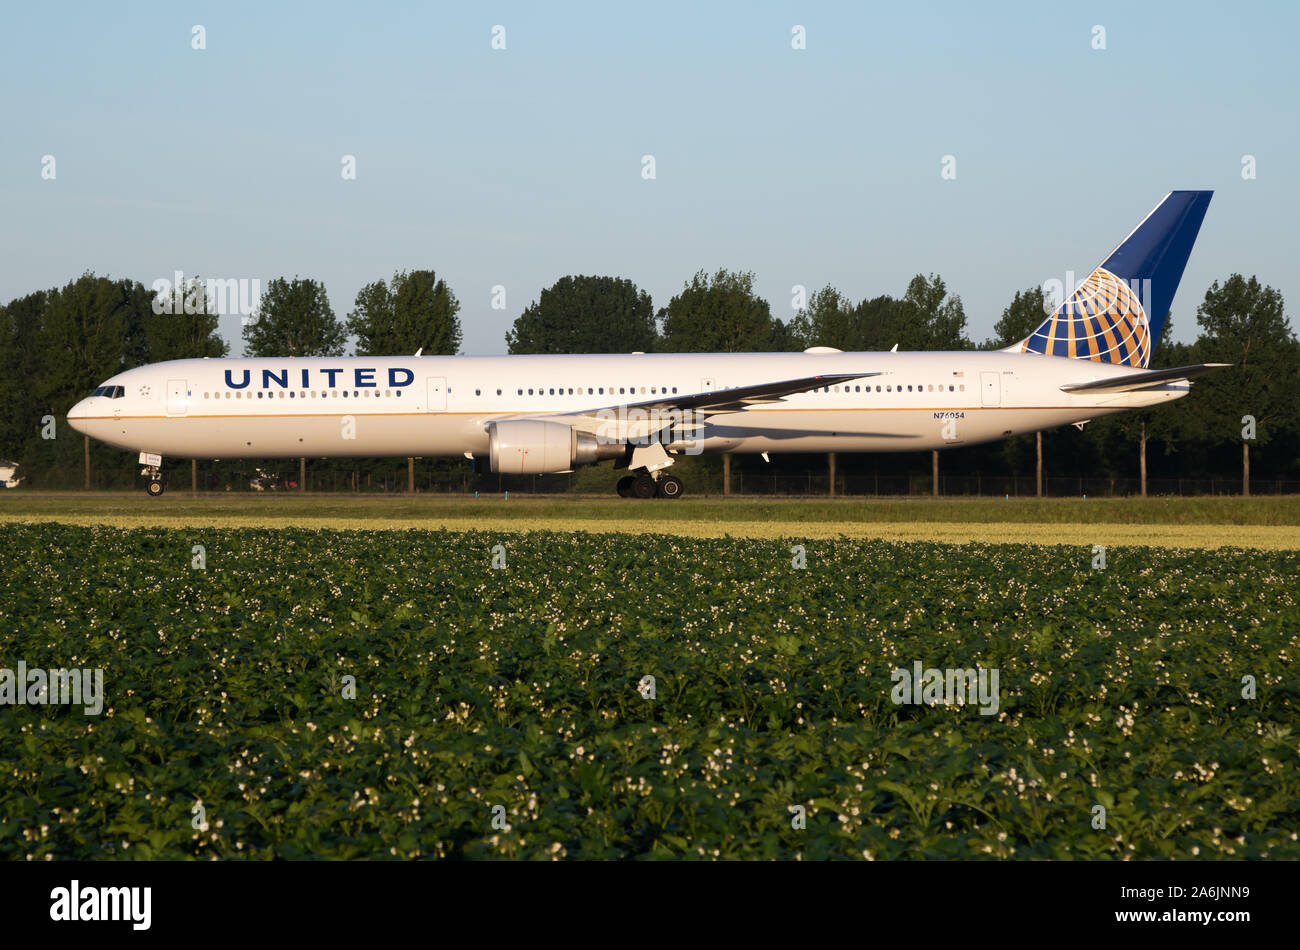 Amsterdam / Netherlands - July 3, 2017: United Airlines Boeing 767-400 N76054 passenger plane taxiing at Amsterdam Schipol Airport Stock Photo